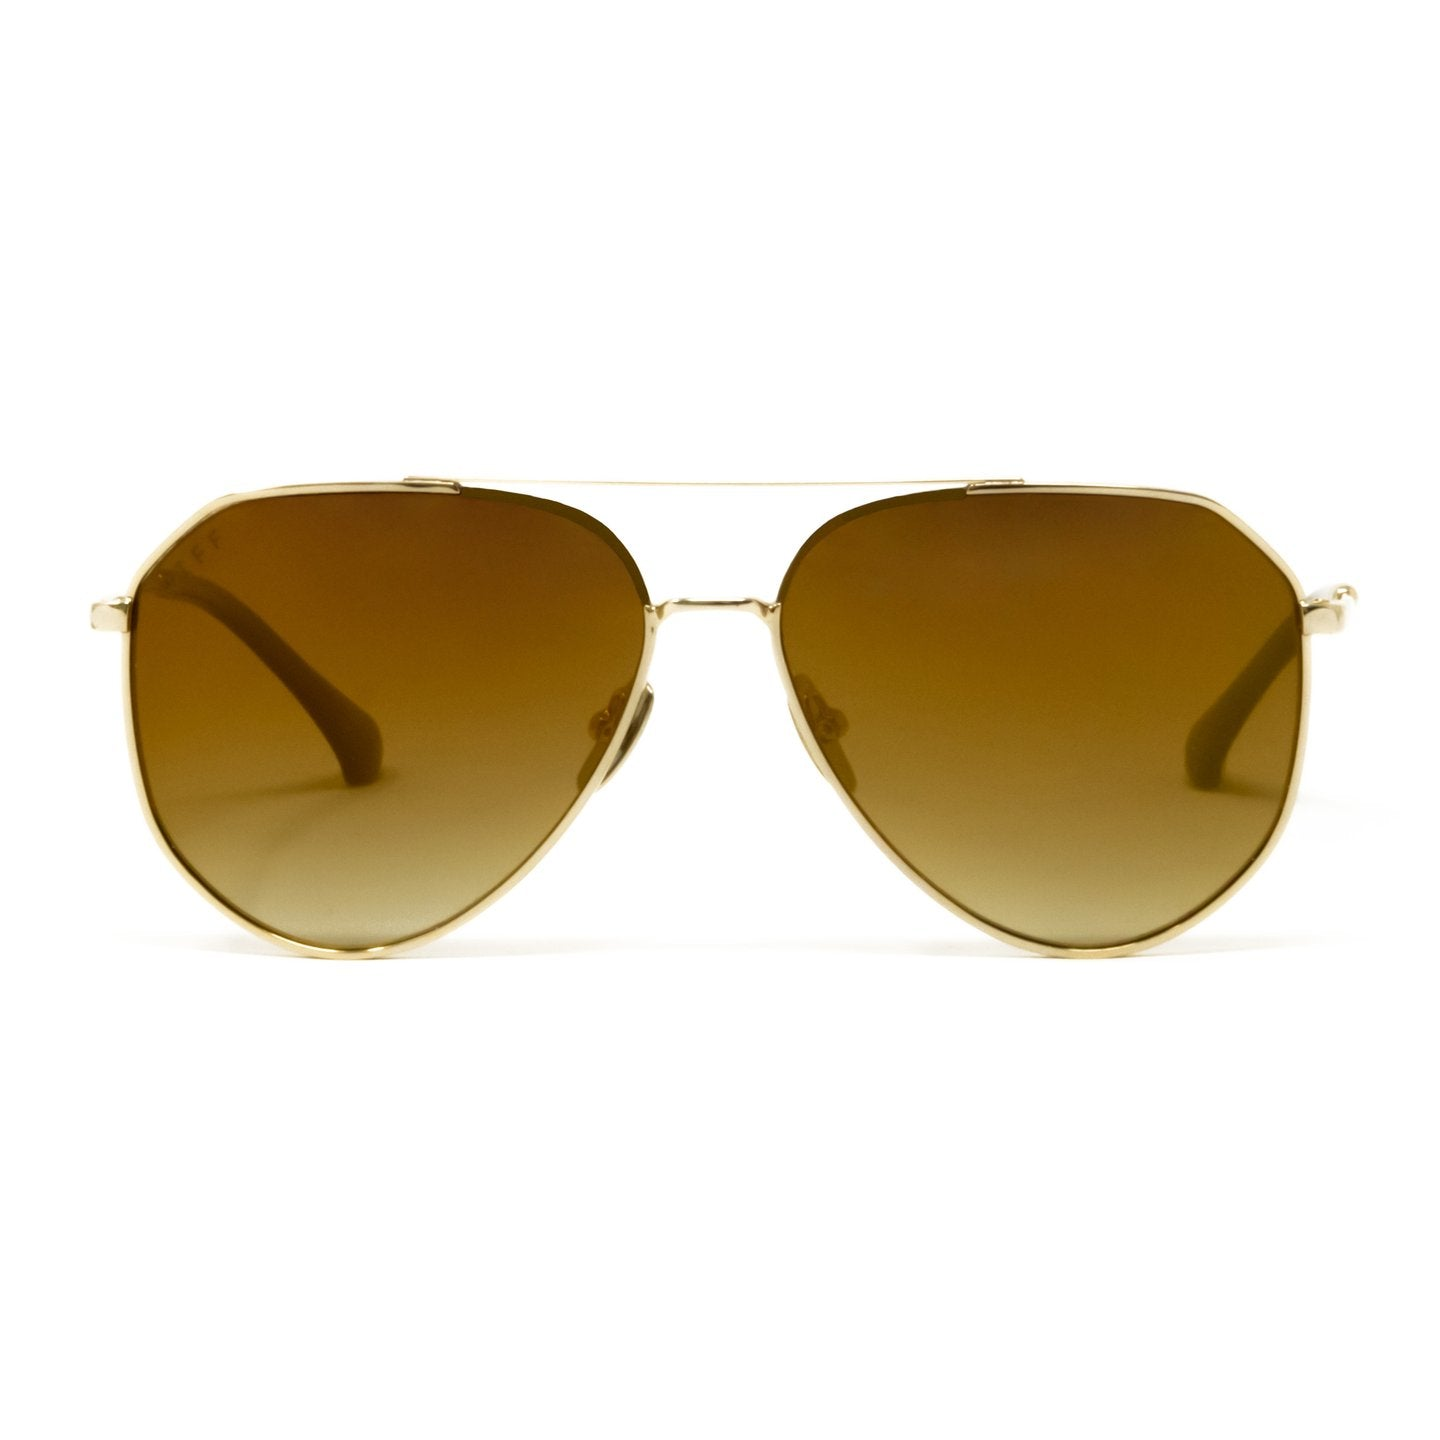 JESSIE JAMES DECKER - DASH (Polarized, Gold, Gold Mirror)